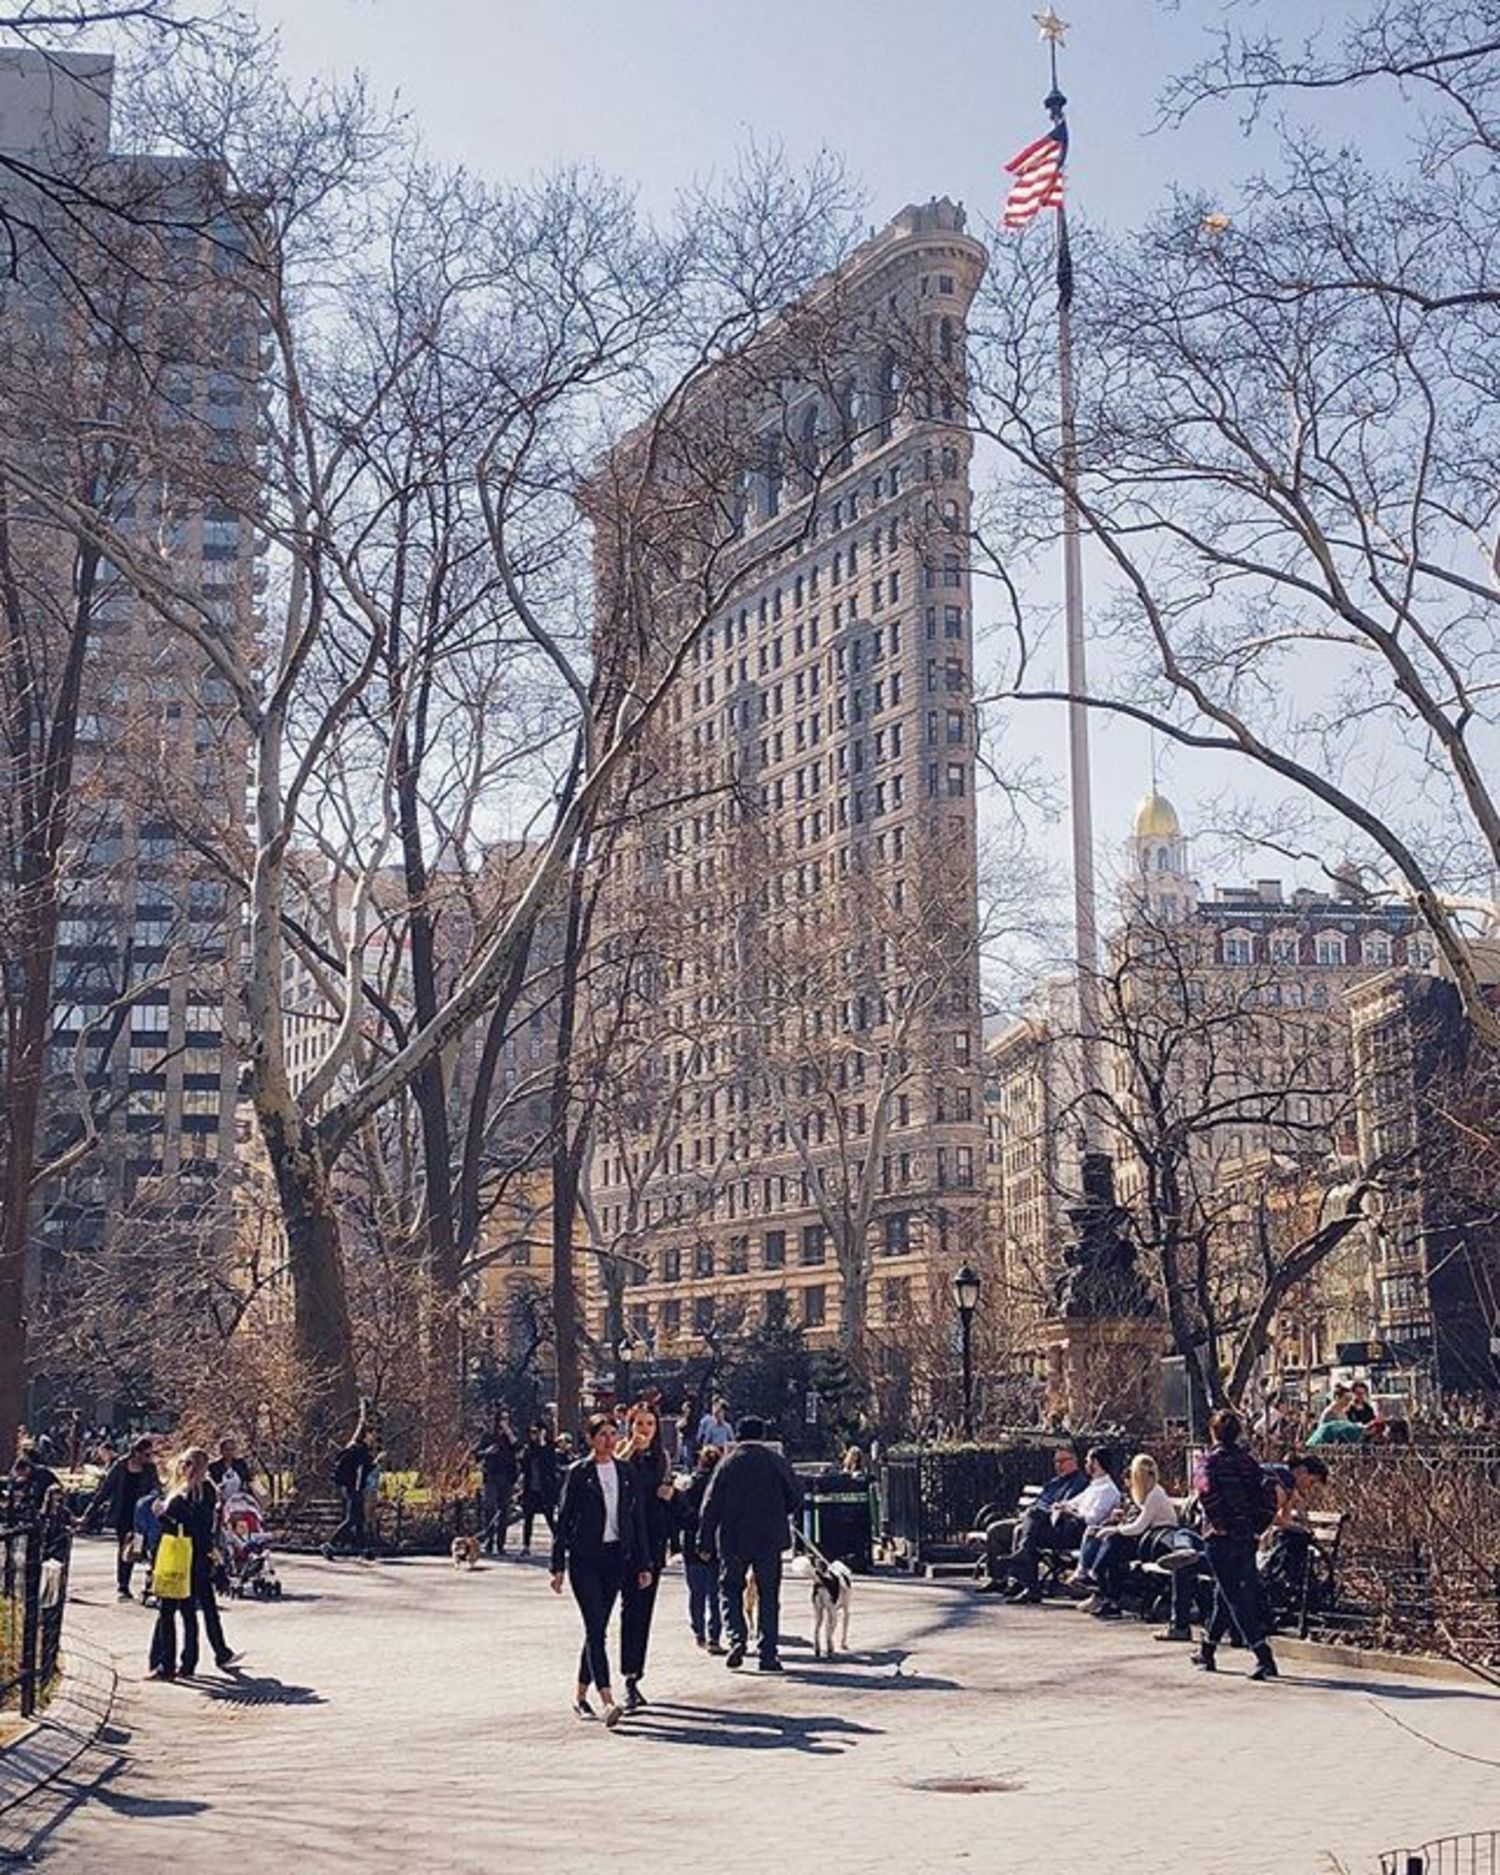 Flatiron Building, New York, New York. Photo via @melliekr #viewingnyc #newyork #newyorkcity #nyc #flatironbuilding